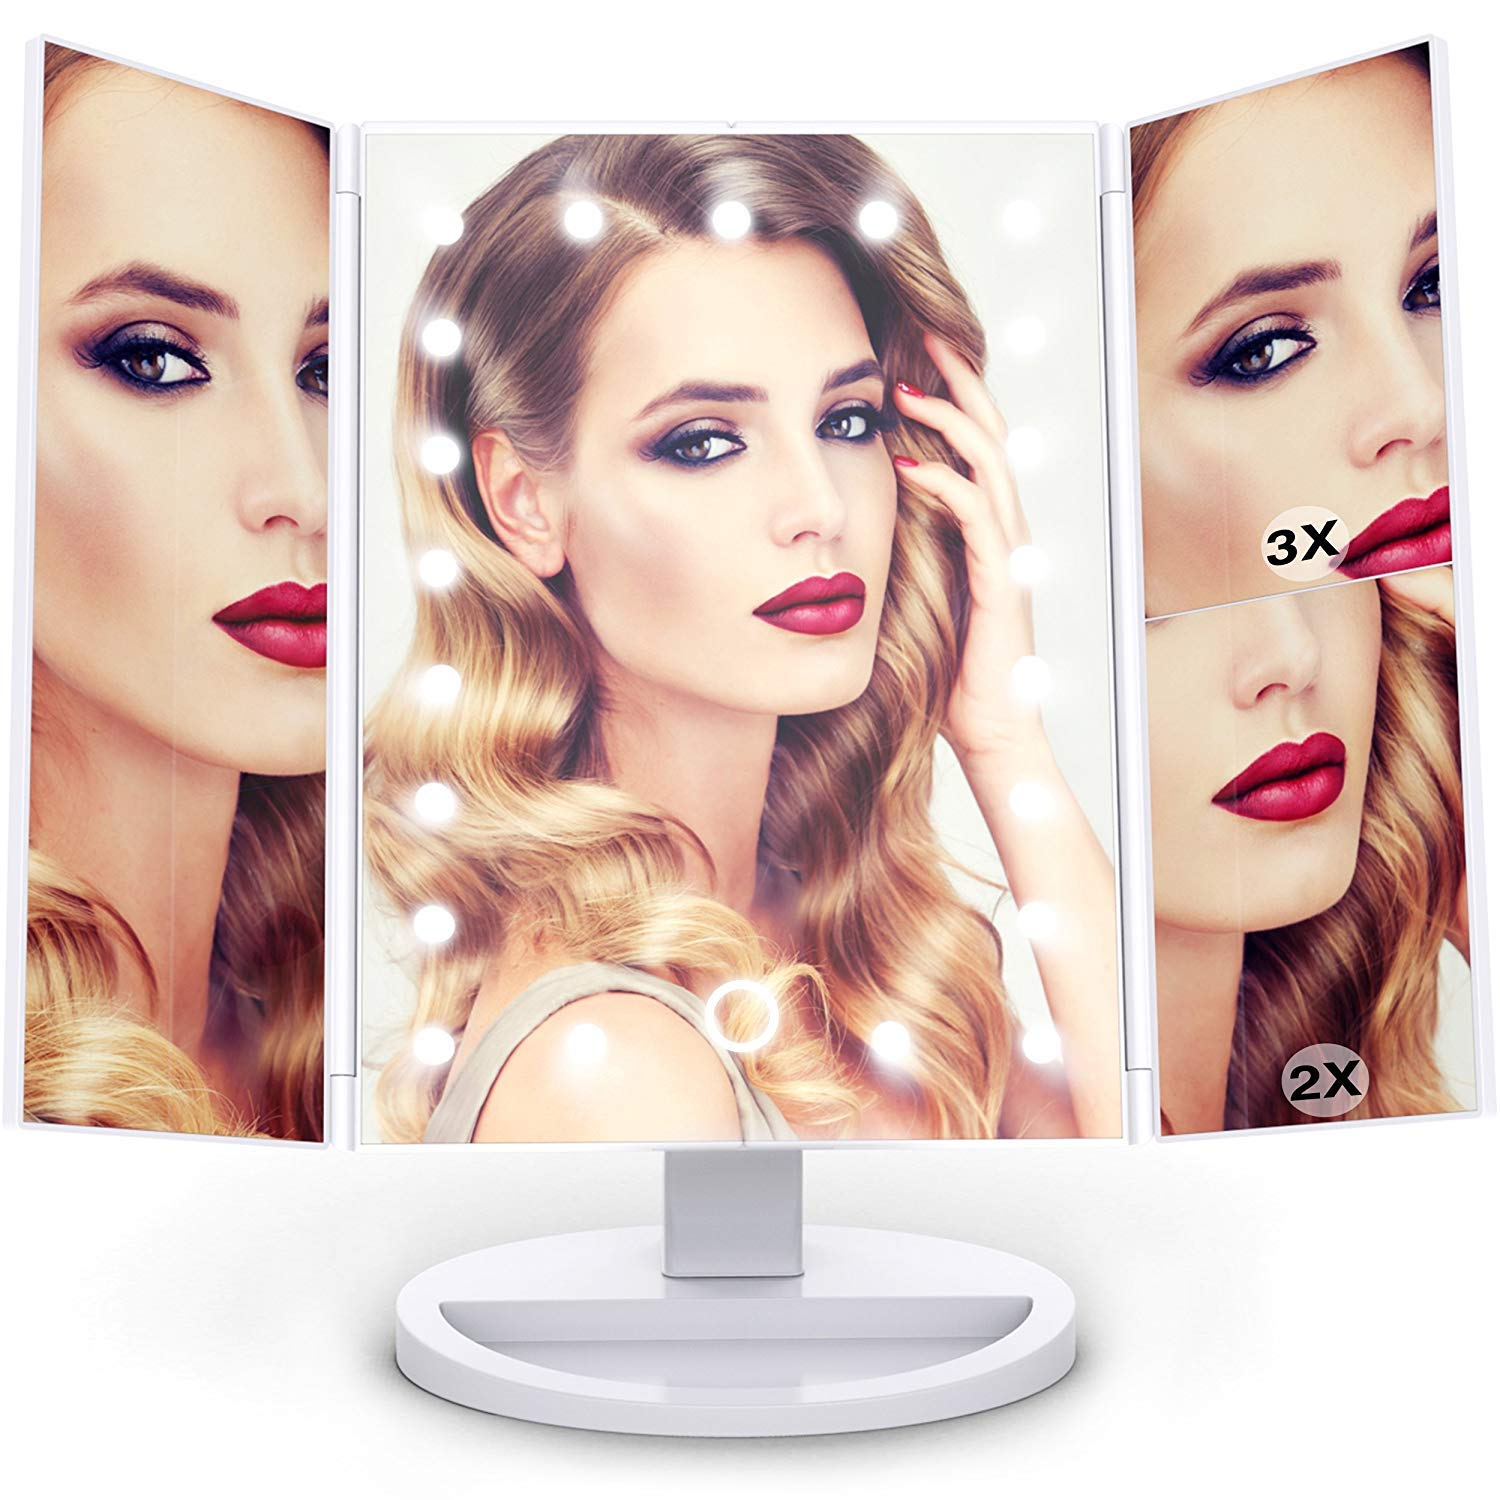 Vanity Makeup Mirror Trifold with Upgraded Touch Screen - Lighting 21 LED Lights, 1x/2x/3x Magnification, 180° Adjustable Stand, and High-Power USB Charging Backlight FHC